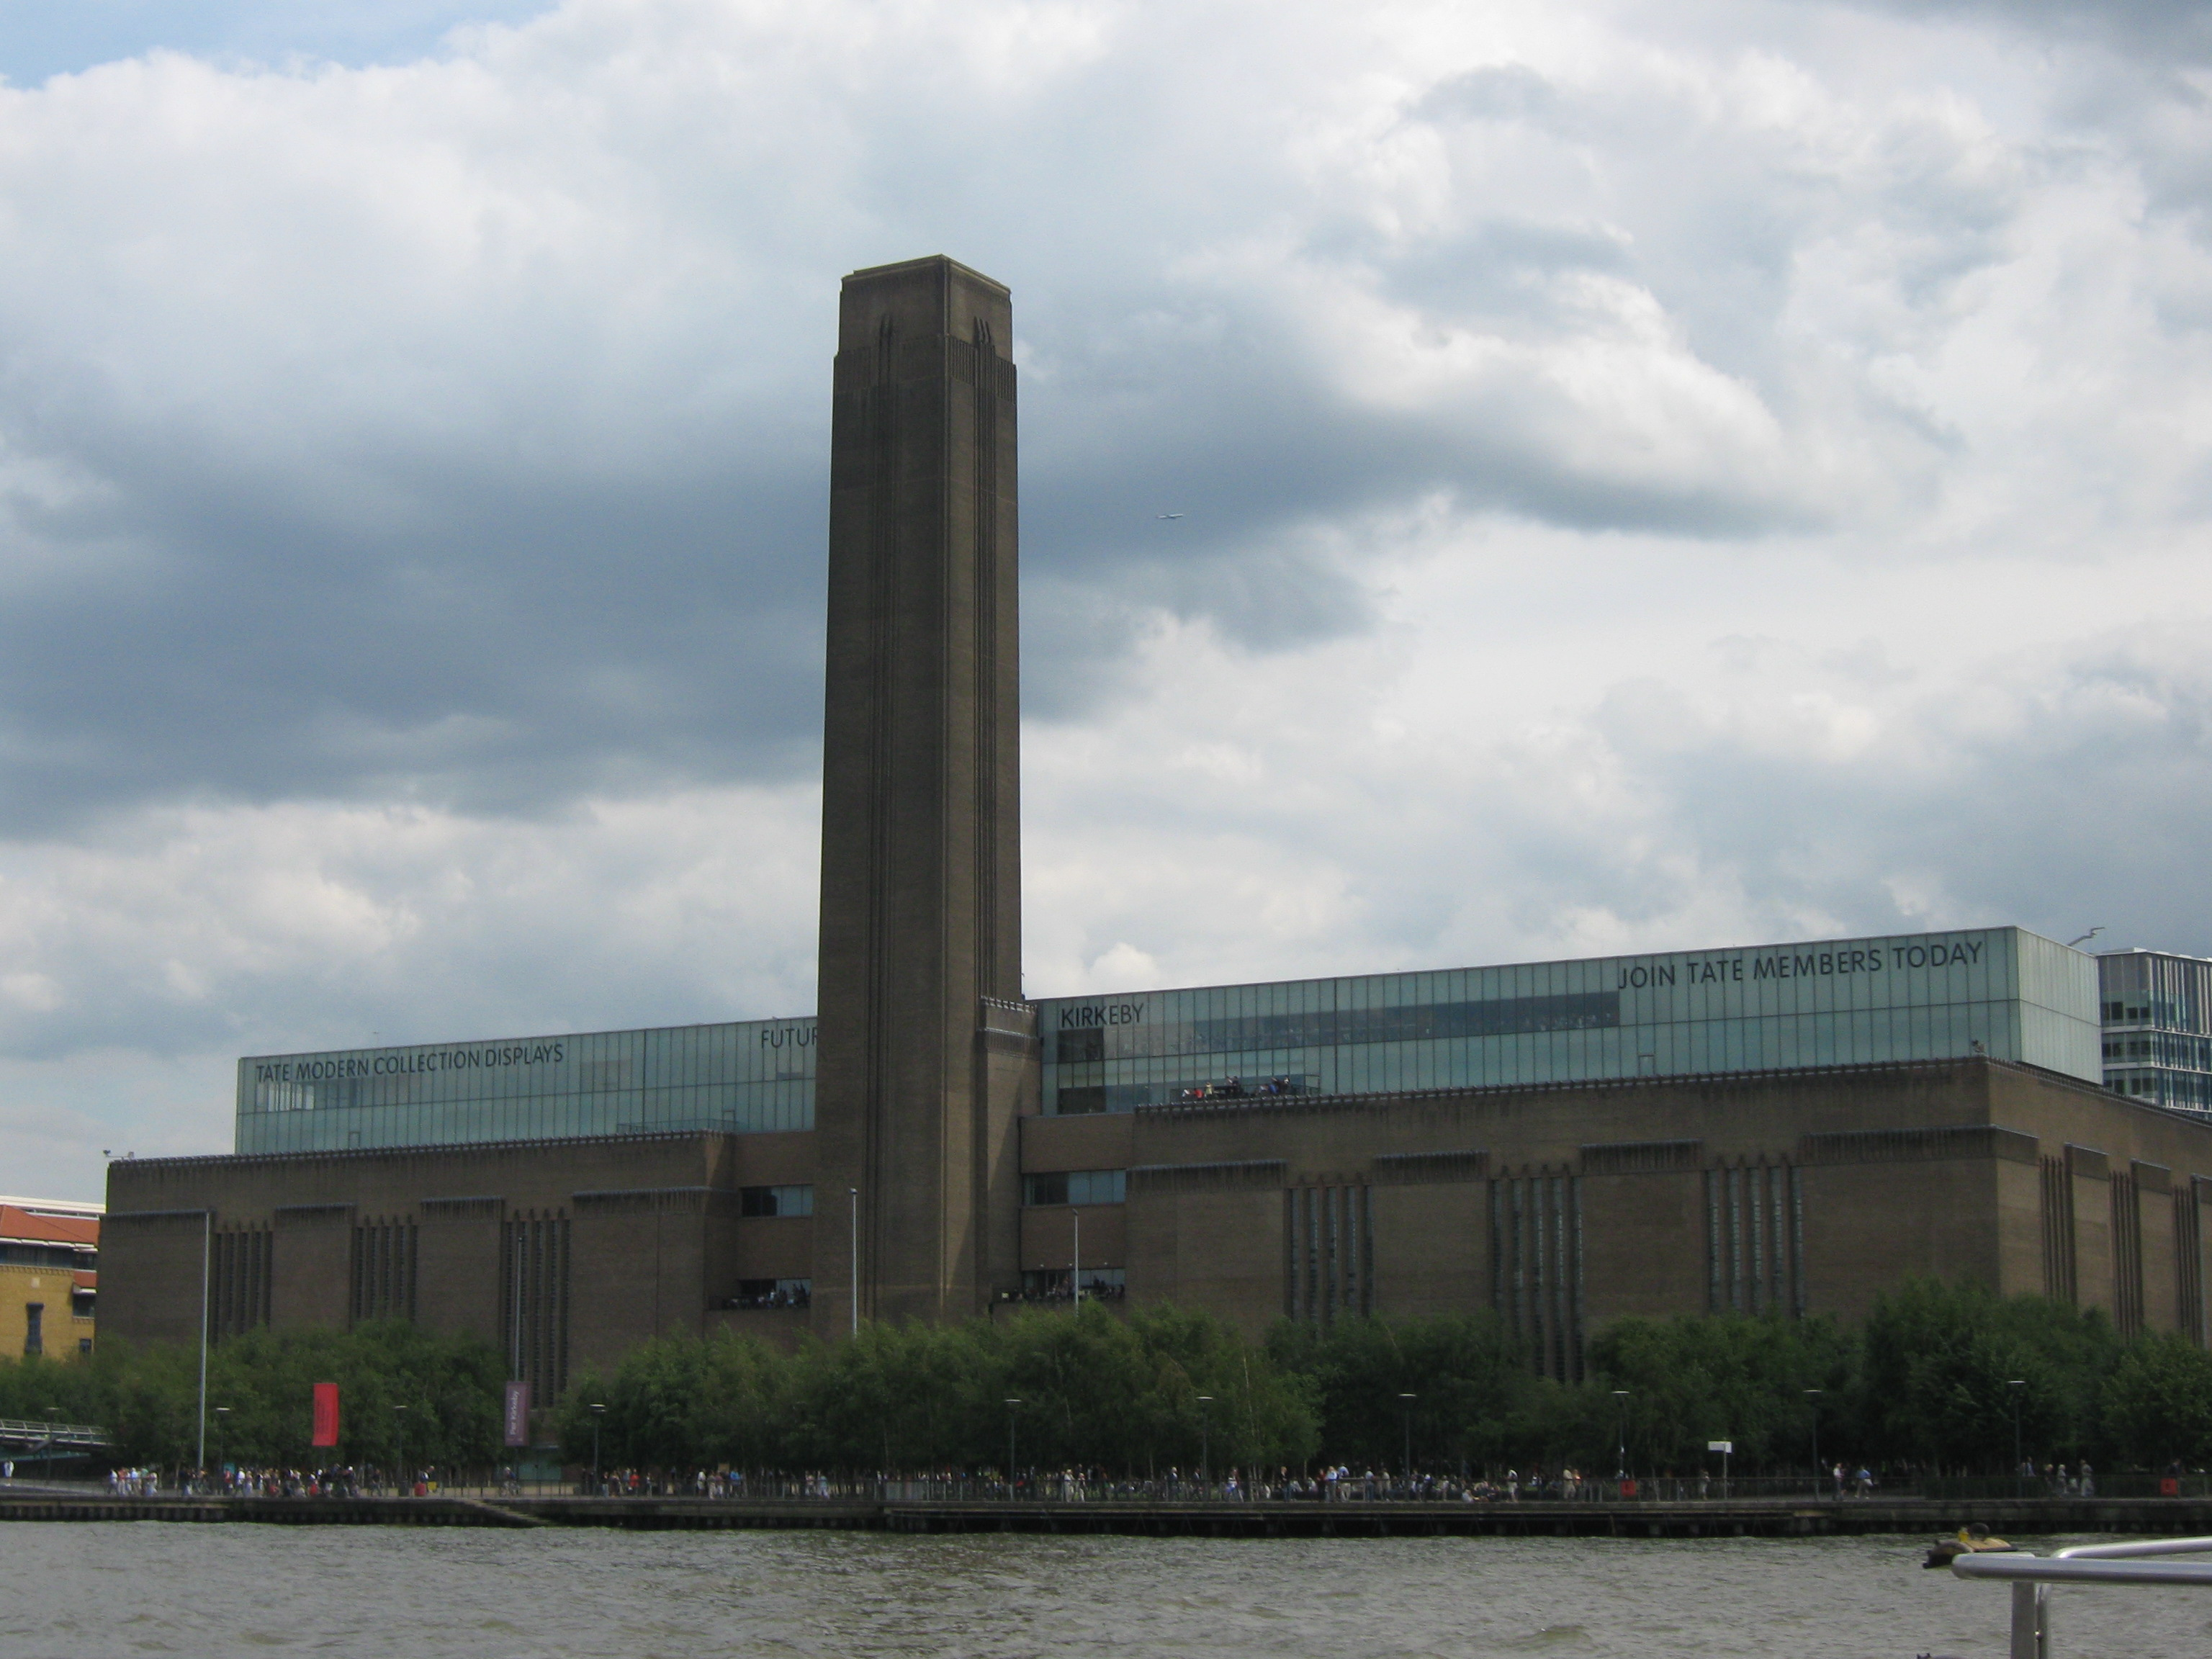 File:Tate modern London.jpg - Wikimedia Commons